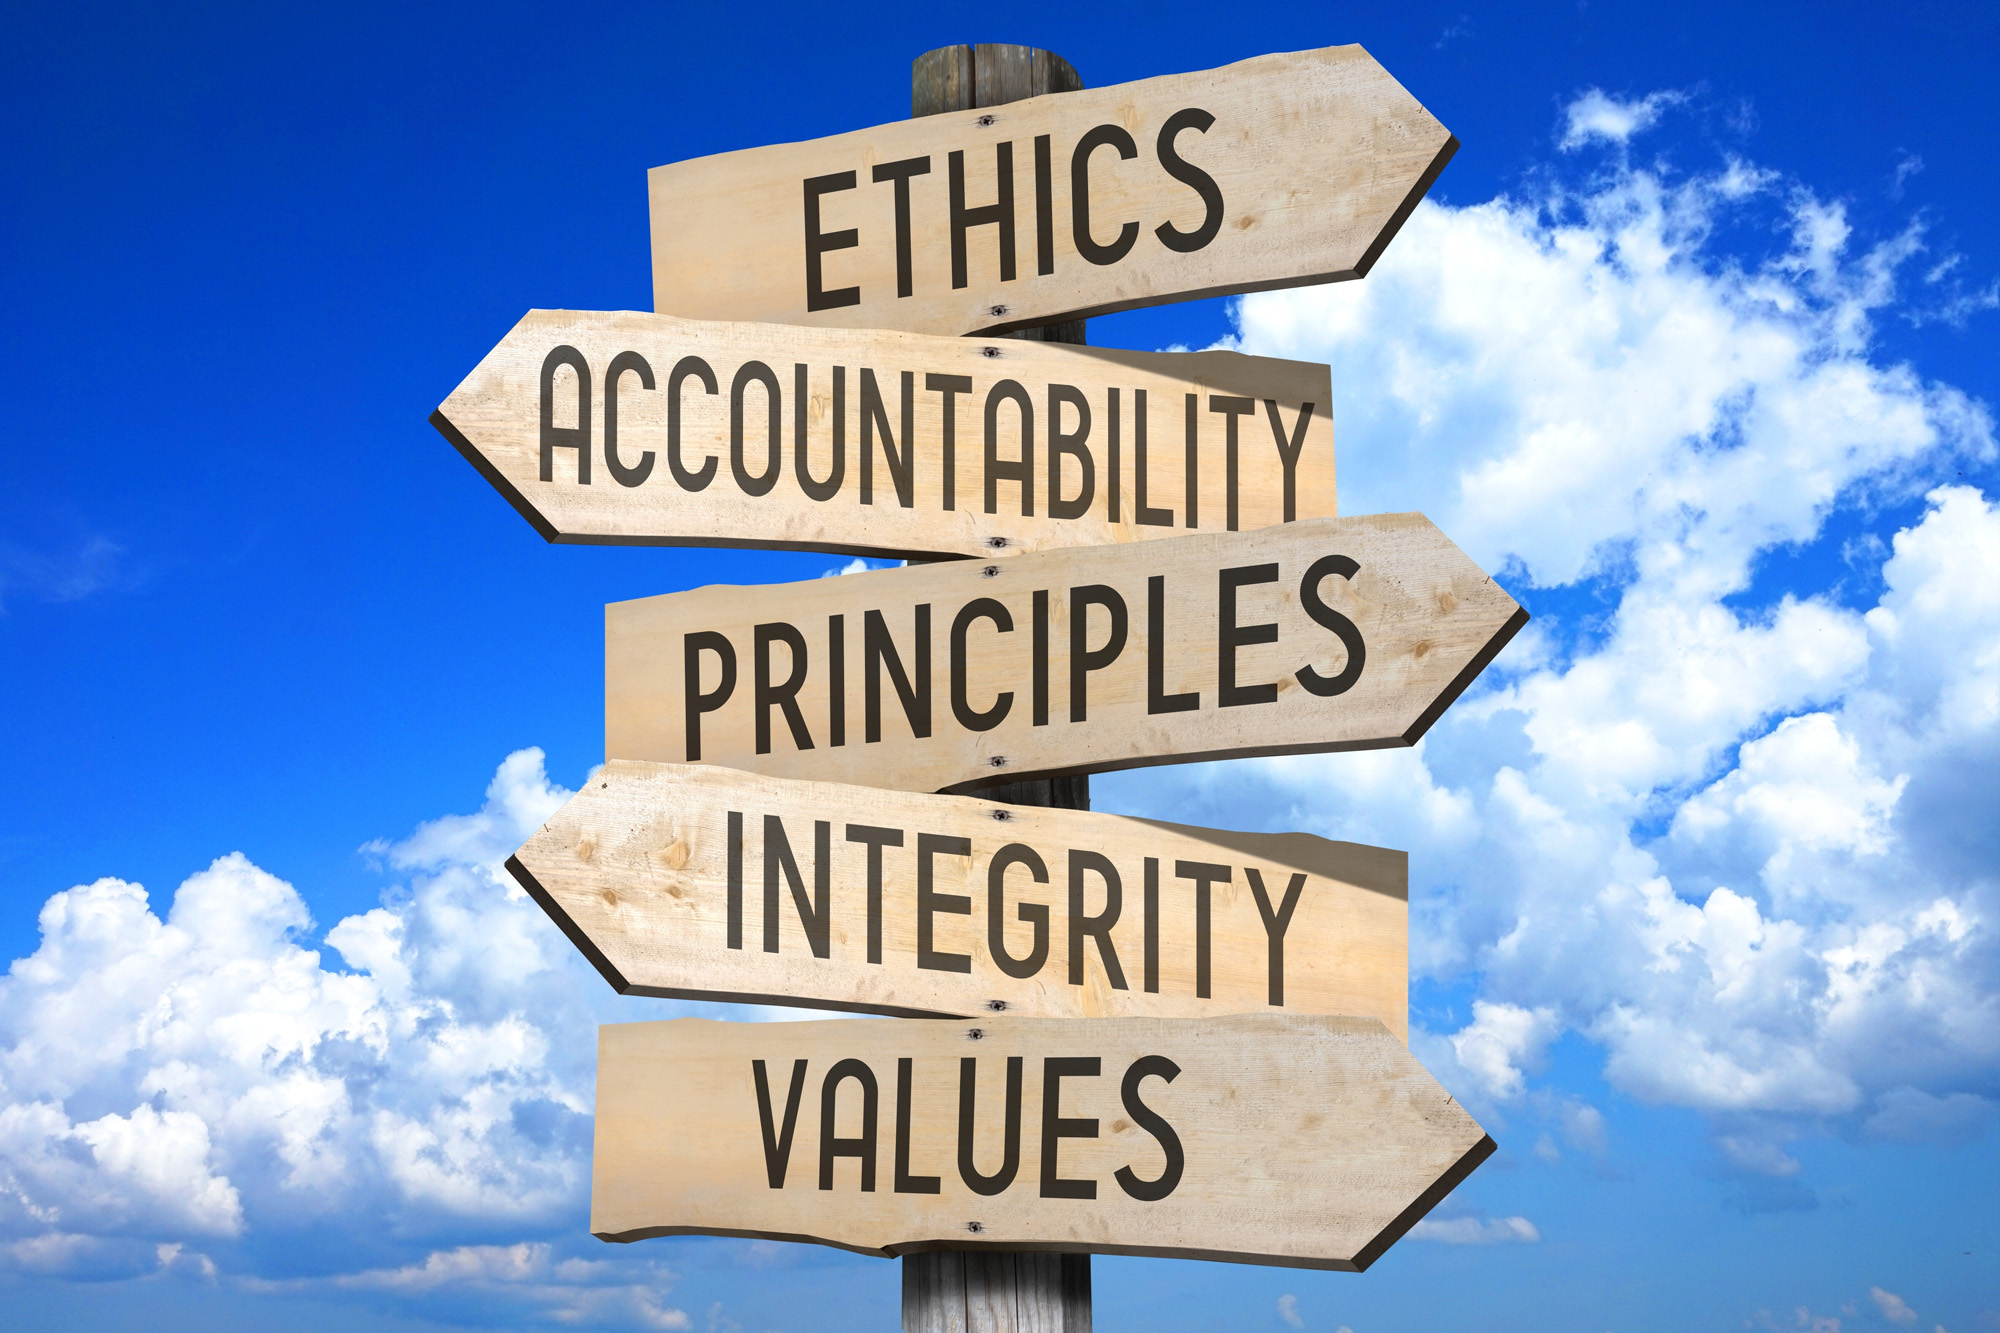 This image shows how ethics can be used to better their lives.